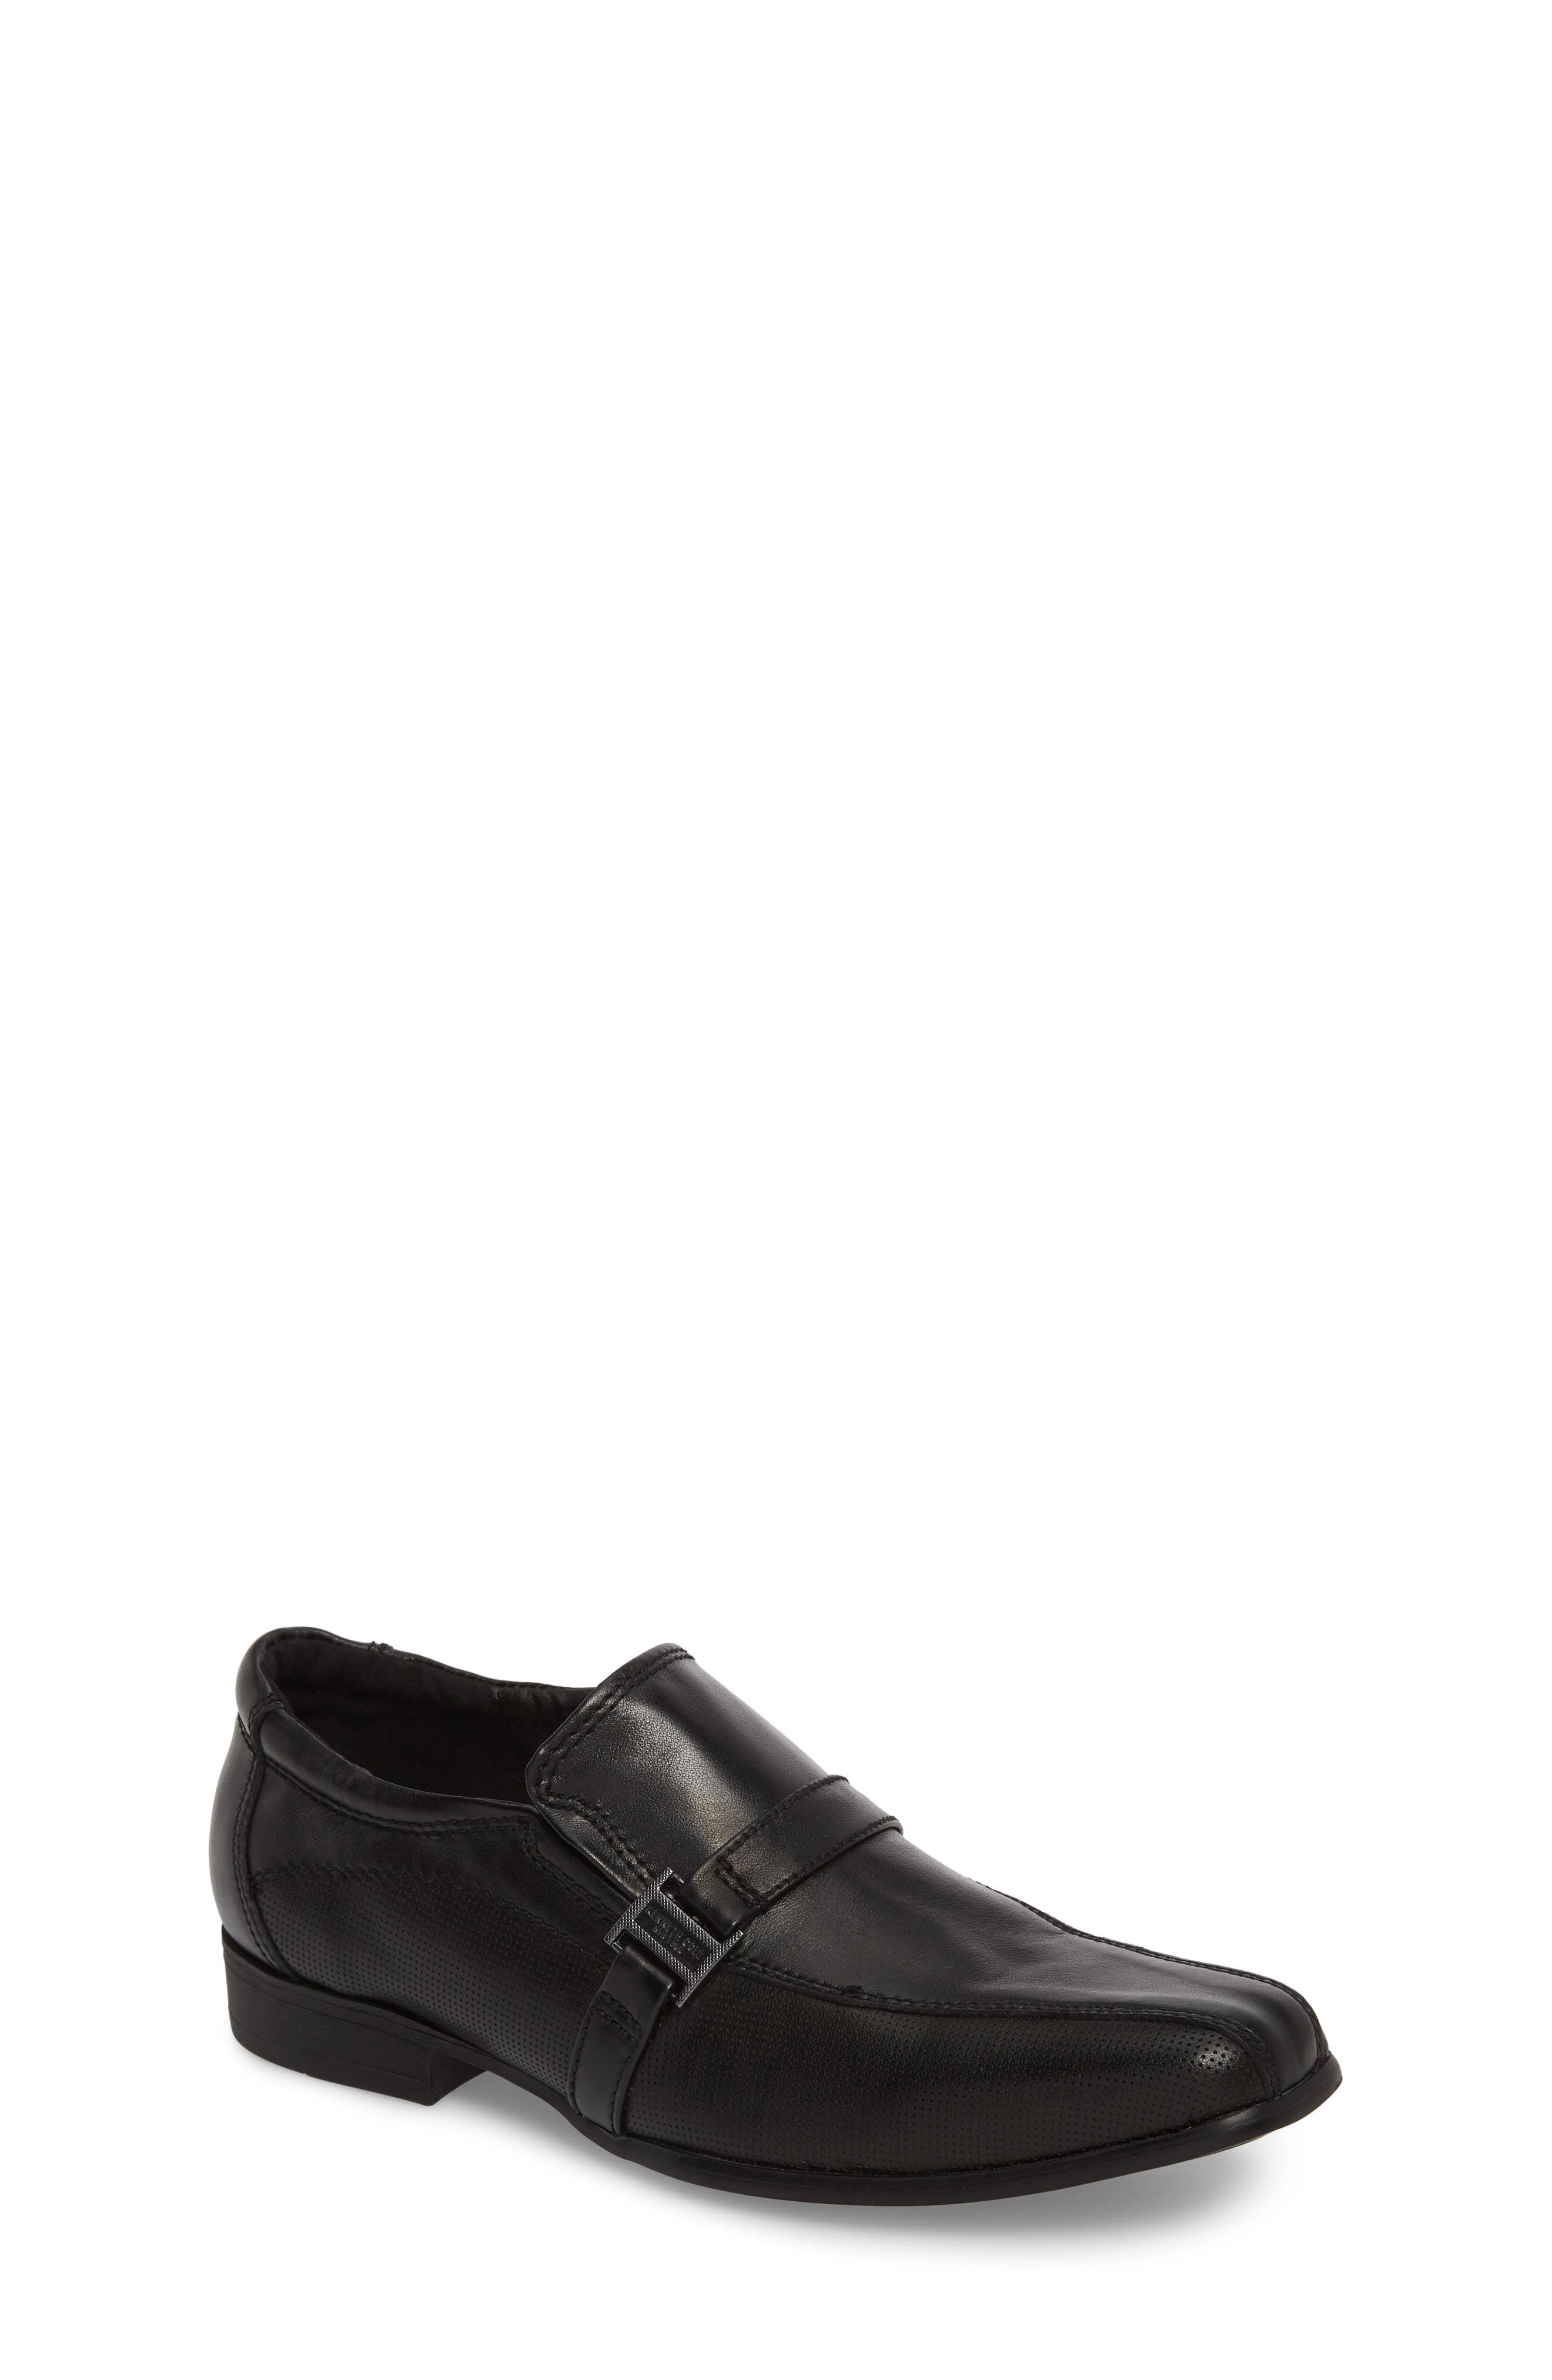 KENNETH COLE NEW YORK,                             Magic News Venetian Loafer,                             Main thumbnail 1, color,                             BLACK